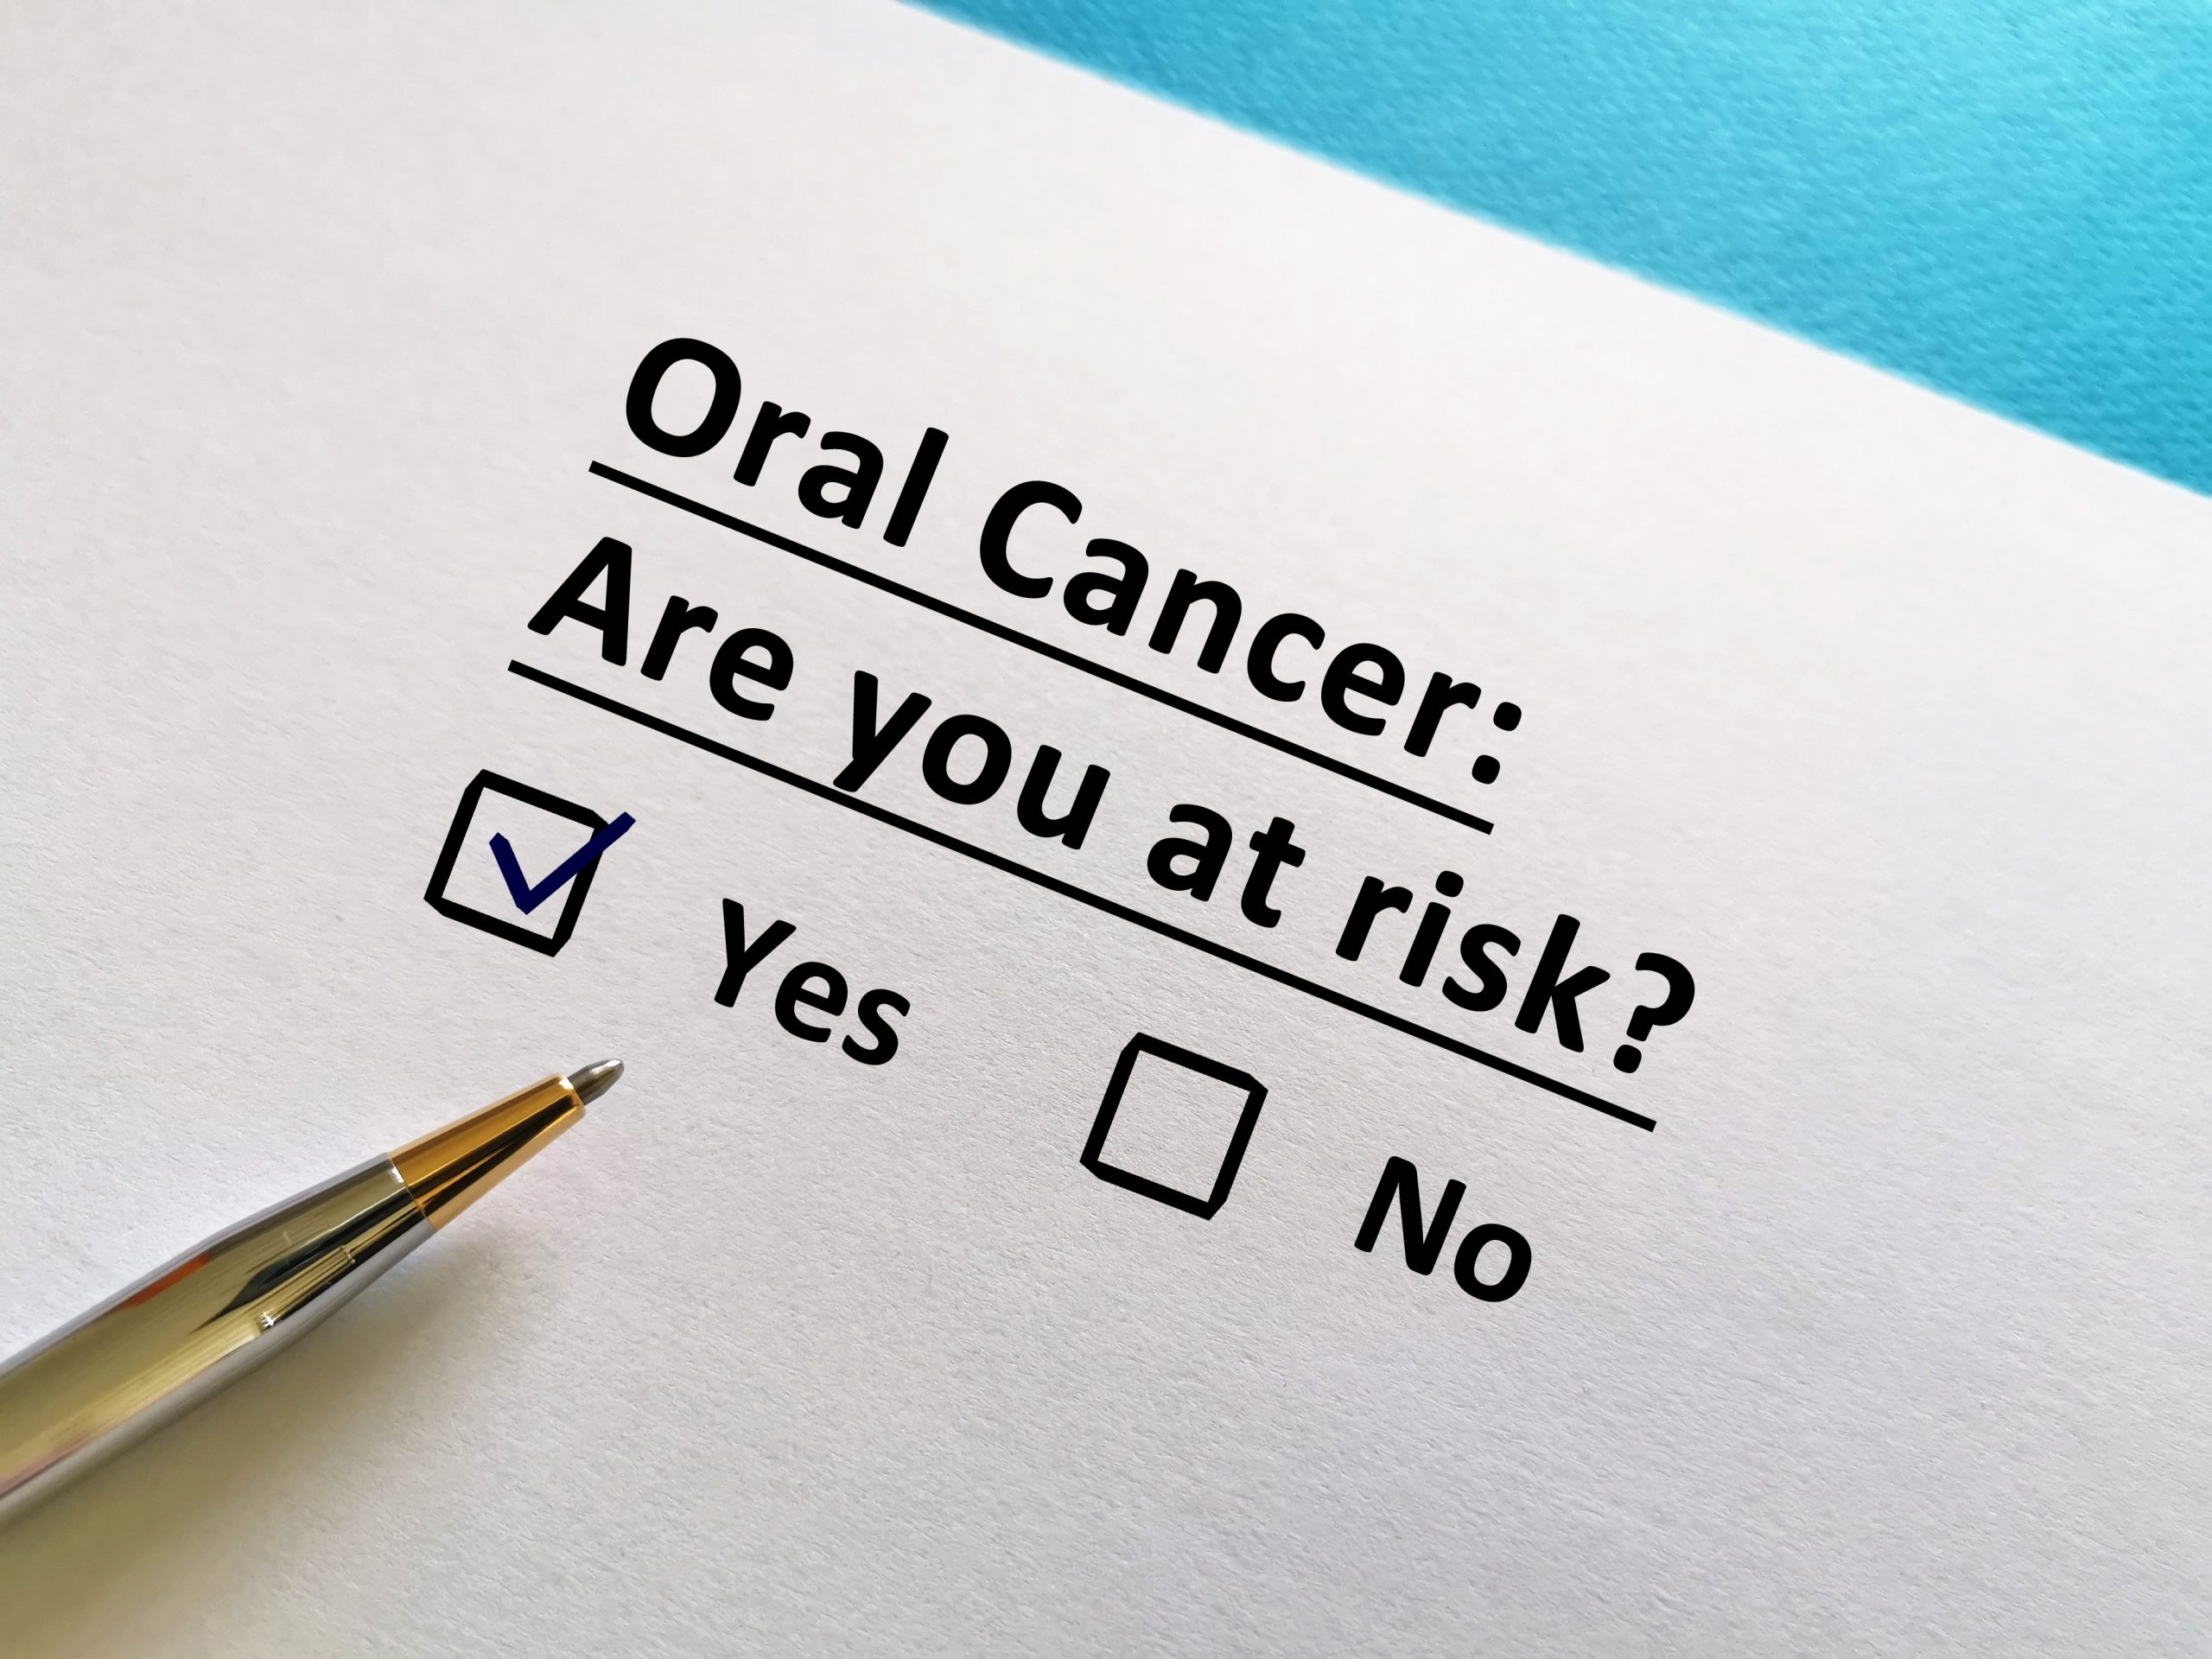 One person is answering question. He is at risk for oral cancer.